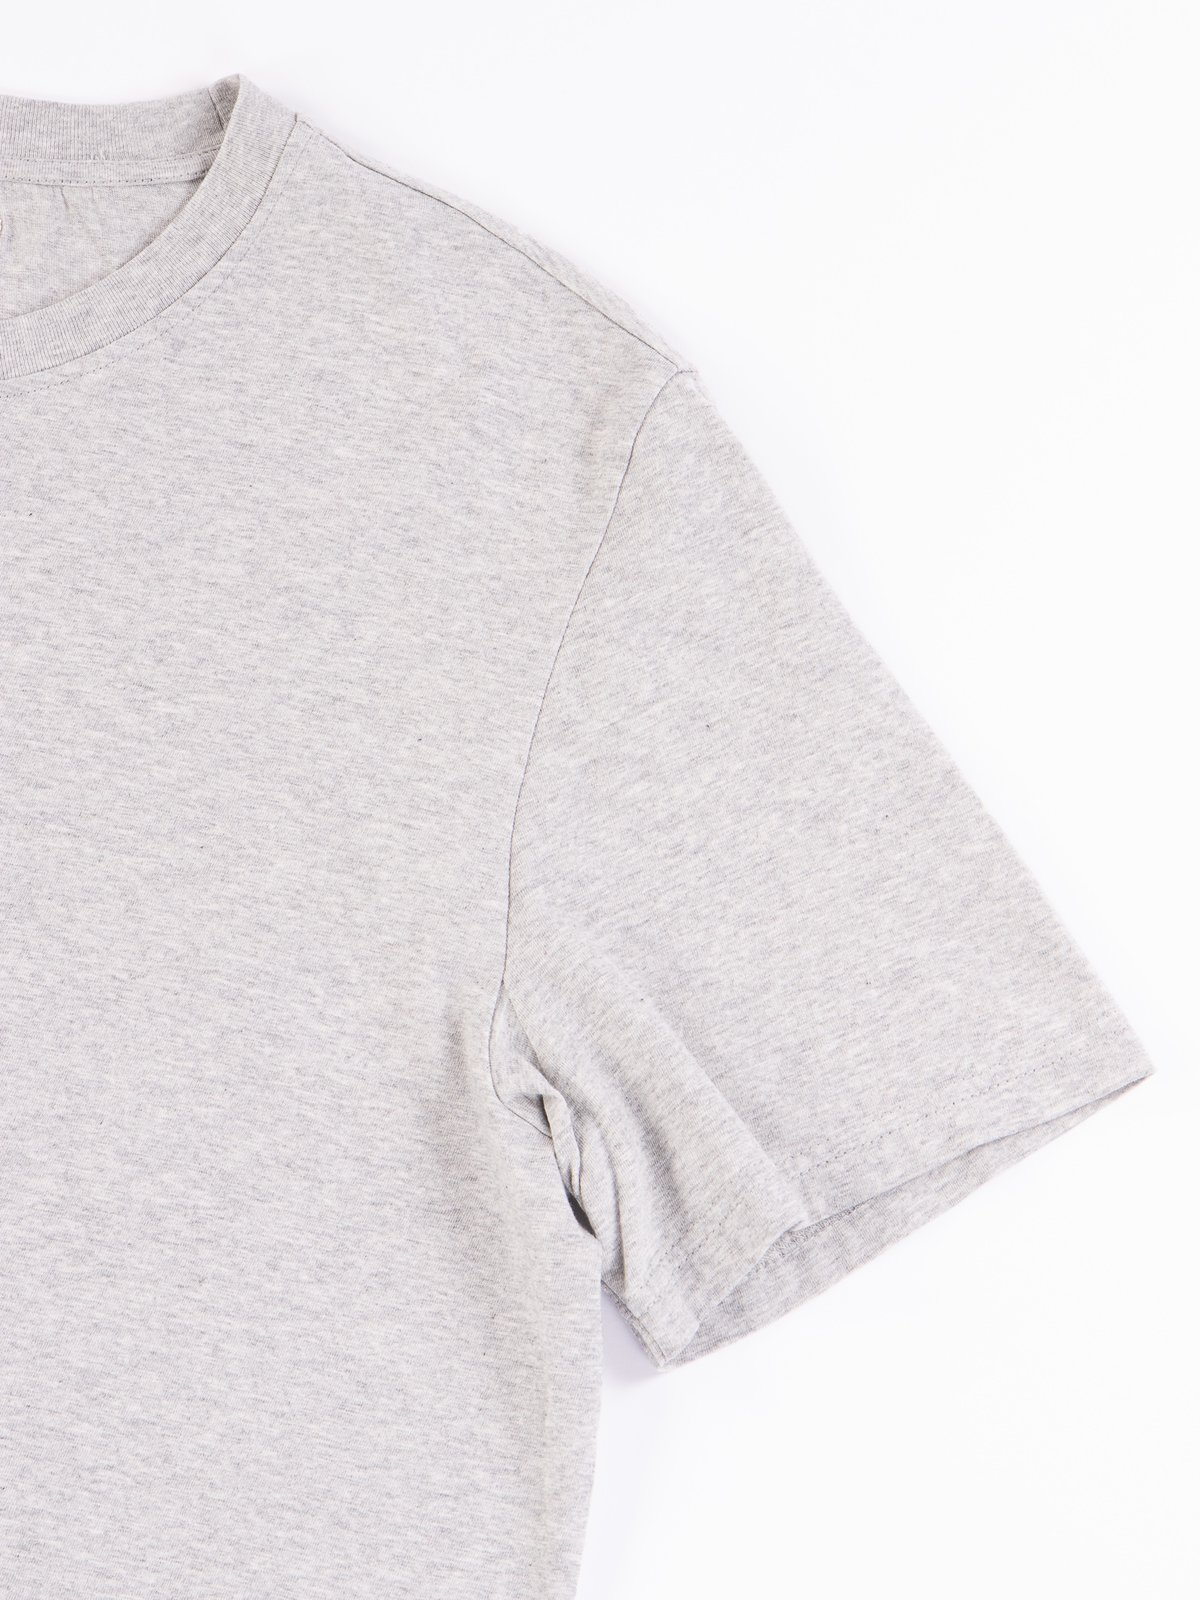 Grey Melange Good Basics CTOS01 Oversized Crew Neck Tee - Image 4